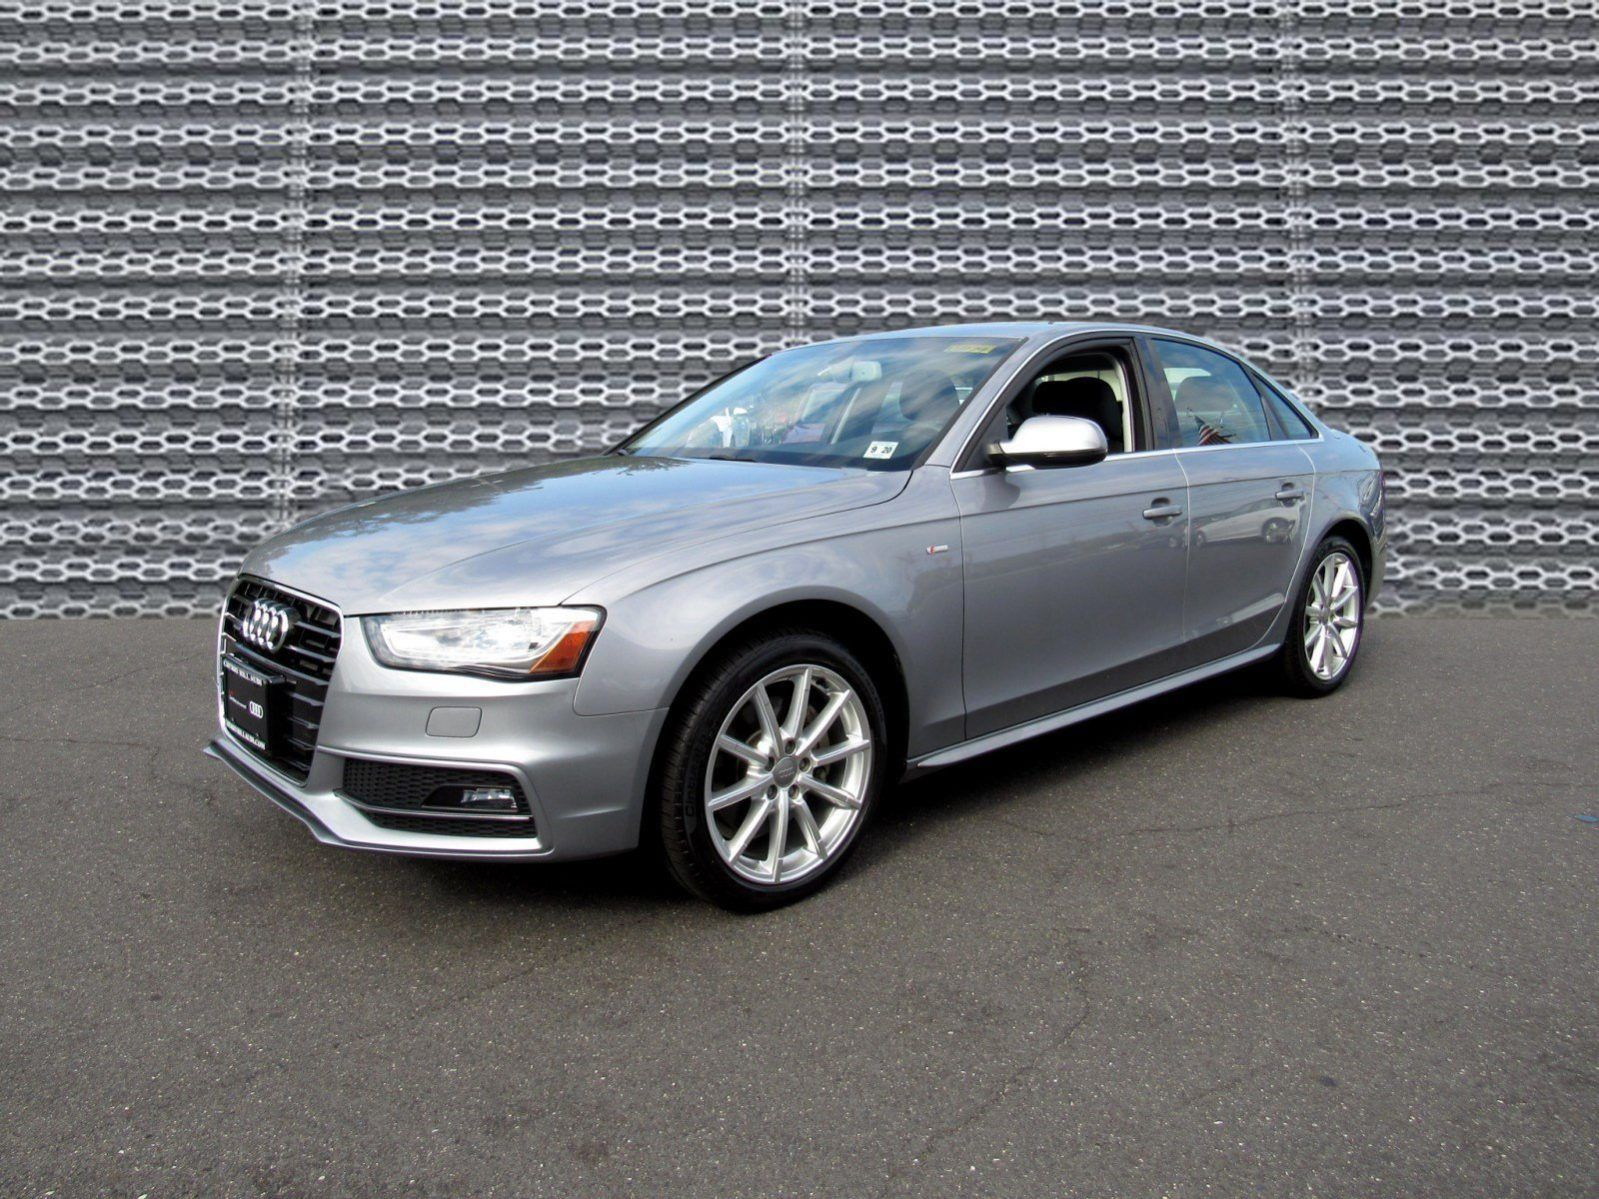 certified audi a4 for sale in cherry hill nj cars for sale used vehicles audi a4 pinterest